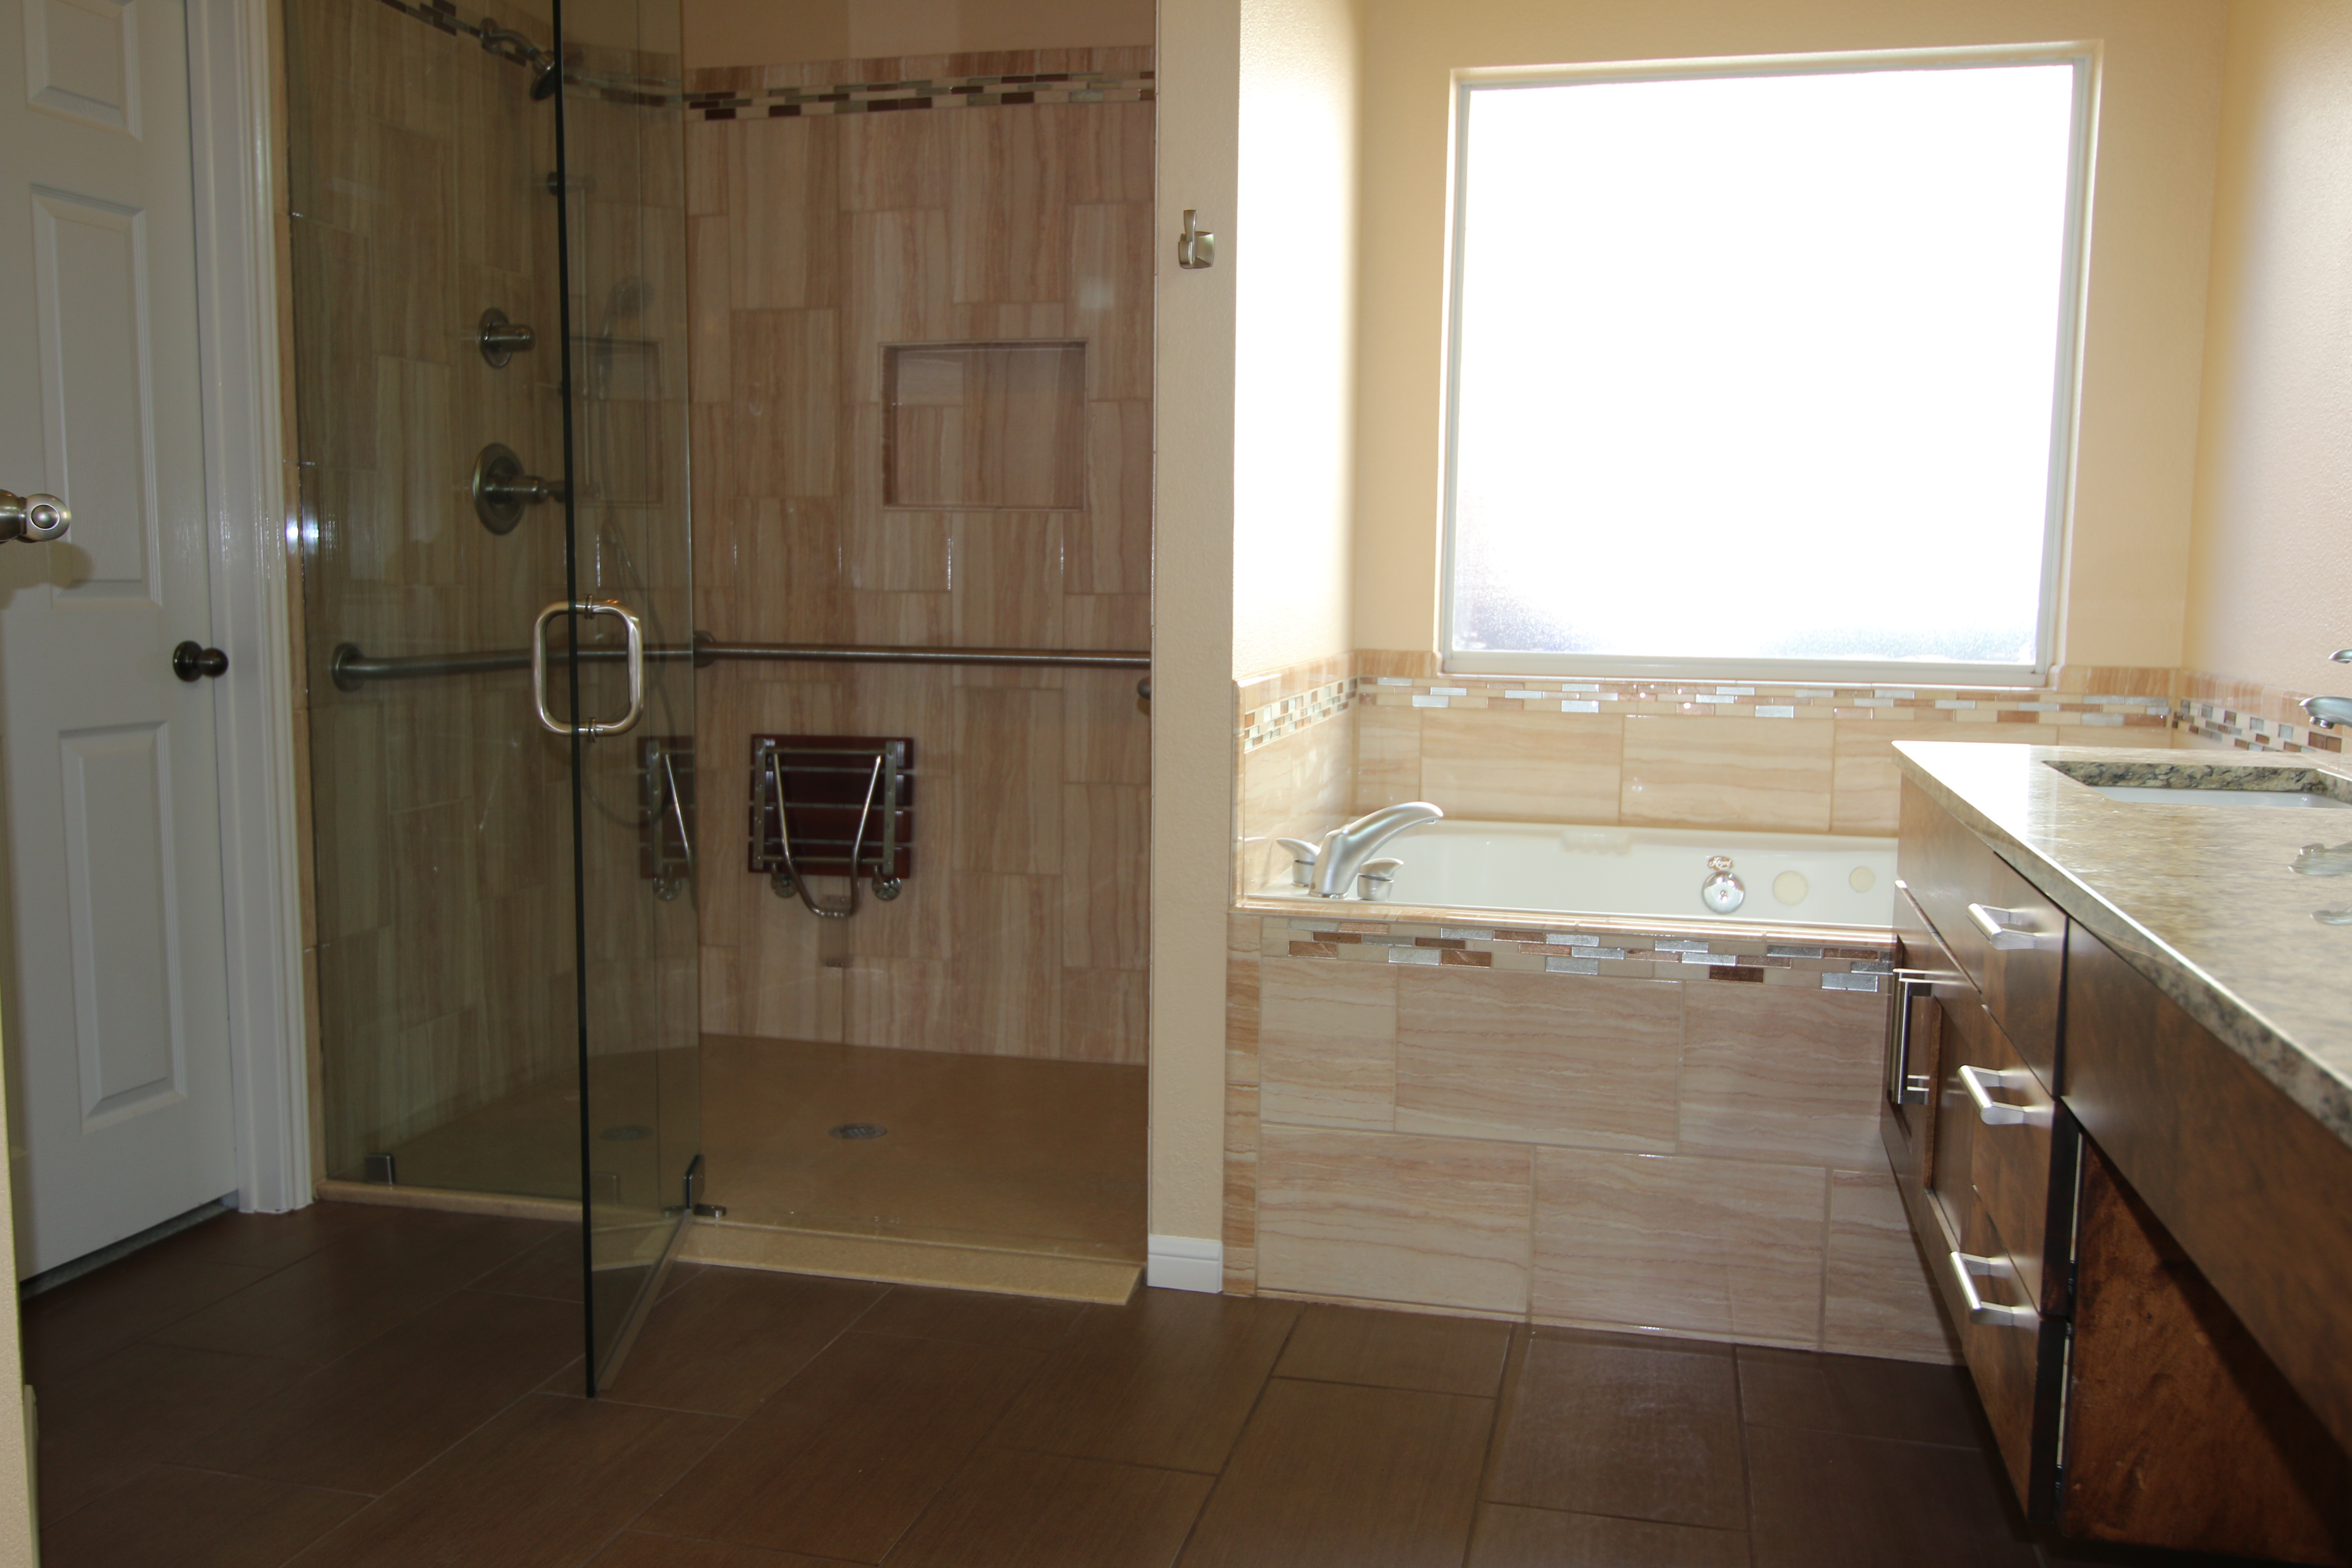 Disability Bathroom Remodels In Austin, Texas